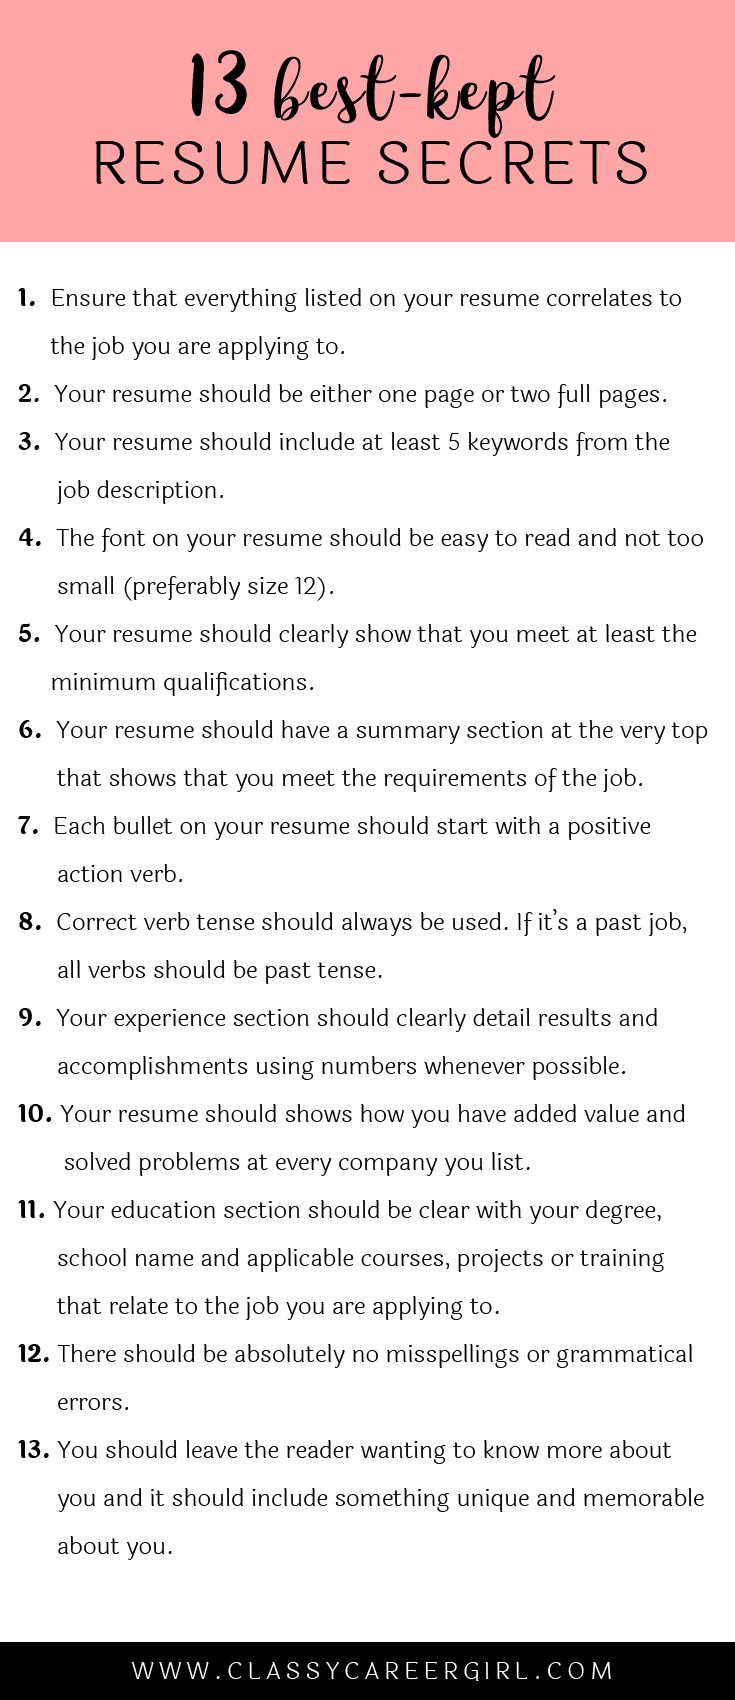 Opposenewapstandardsus  Fascinating  Ideas About Resume On Pinterest  Cv Format Resume Cv And  With Extraordinary Some Hiring Managers Will Toss Your Resume Out If You Dont Know These  With Comely Graduate School Resume Template Also Basic Resume Template Free In Addition Pdf Resume Template And List Of Resume Skills As Well As Job Resume Objective Additionally Resume Templates For Free From Pinterestcom With Opposenewapstandardsus  Extraordinary  Ideas About Resume On Pinterest  Cv Format Resume Cv And  With Comely Some Hiring Managers Will Toss Your Resume Out If You Dont Know These  And Fascinating Graduate School Resume Template Also Basic Resume Template Free In Addition Pdf Resume Template From Pinterestcom